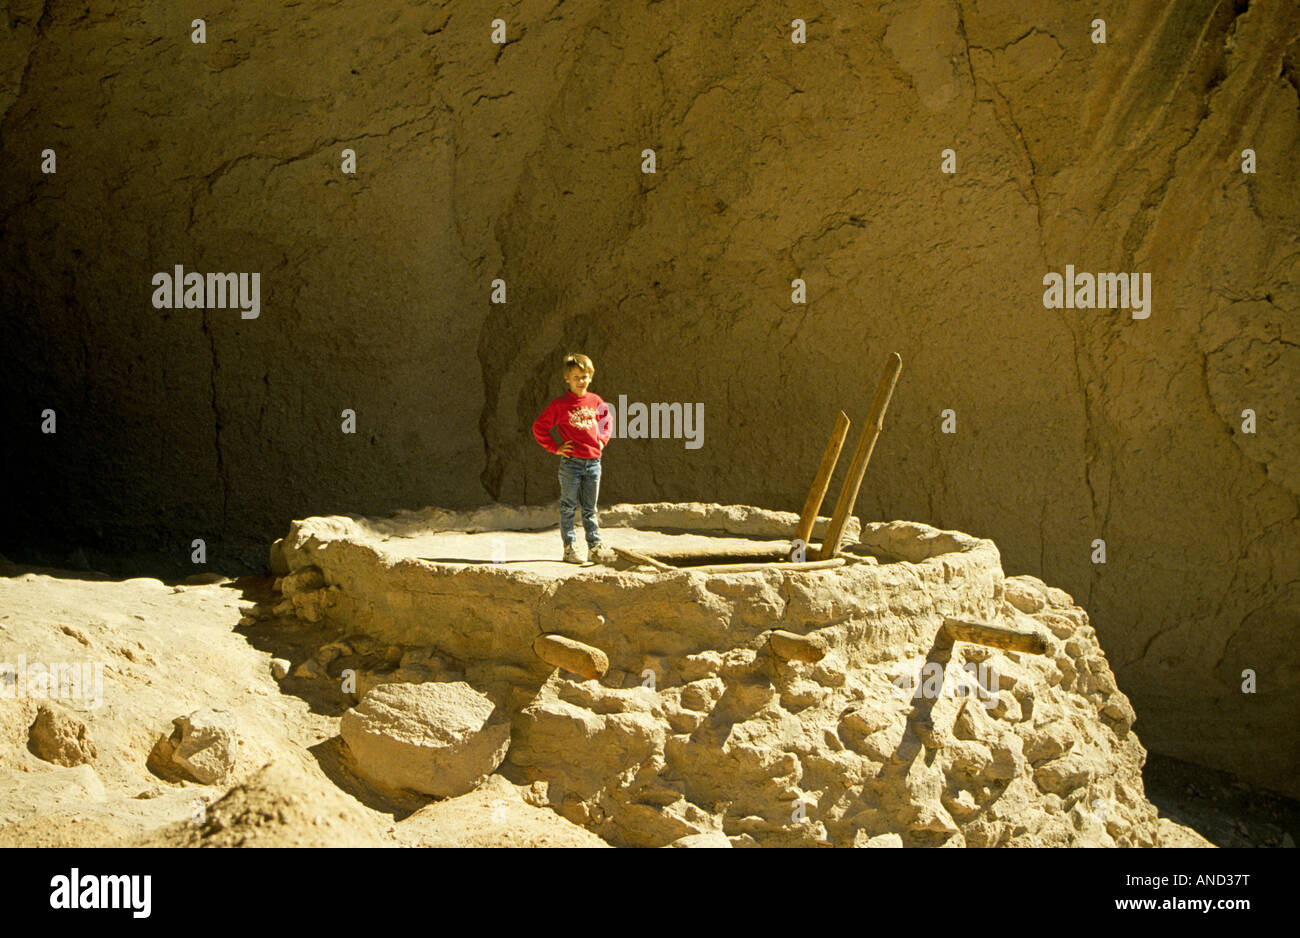 A young boy climbs into an ancient Anasazi kiva or religious chamber in a cave in Bandelier - Stock Image